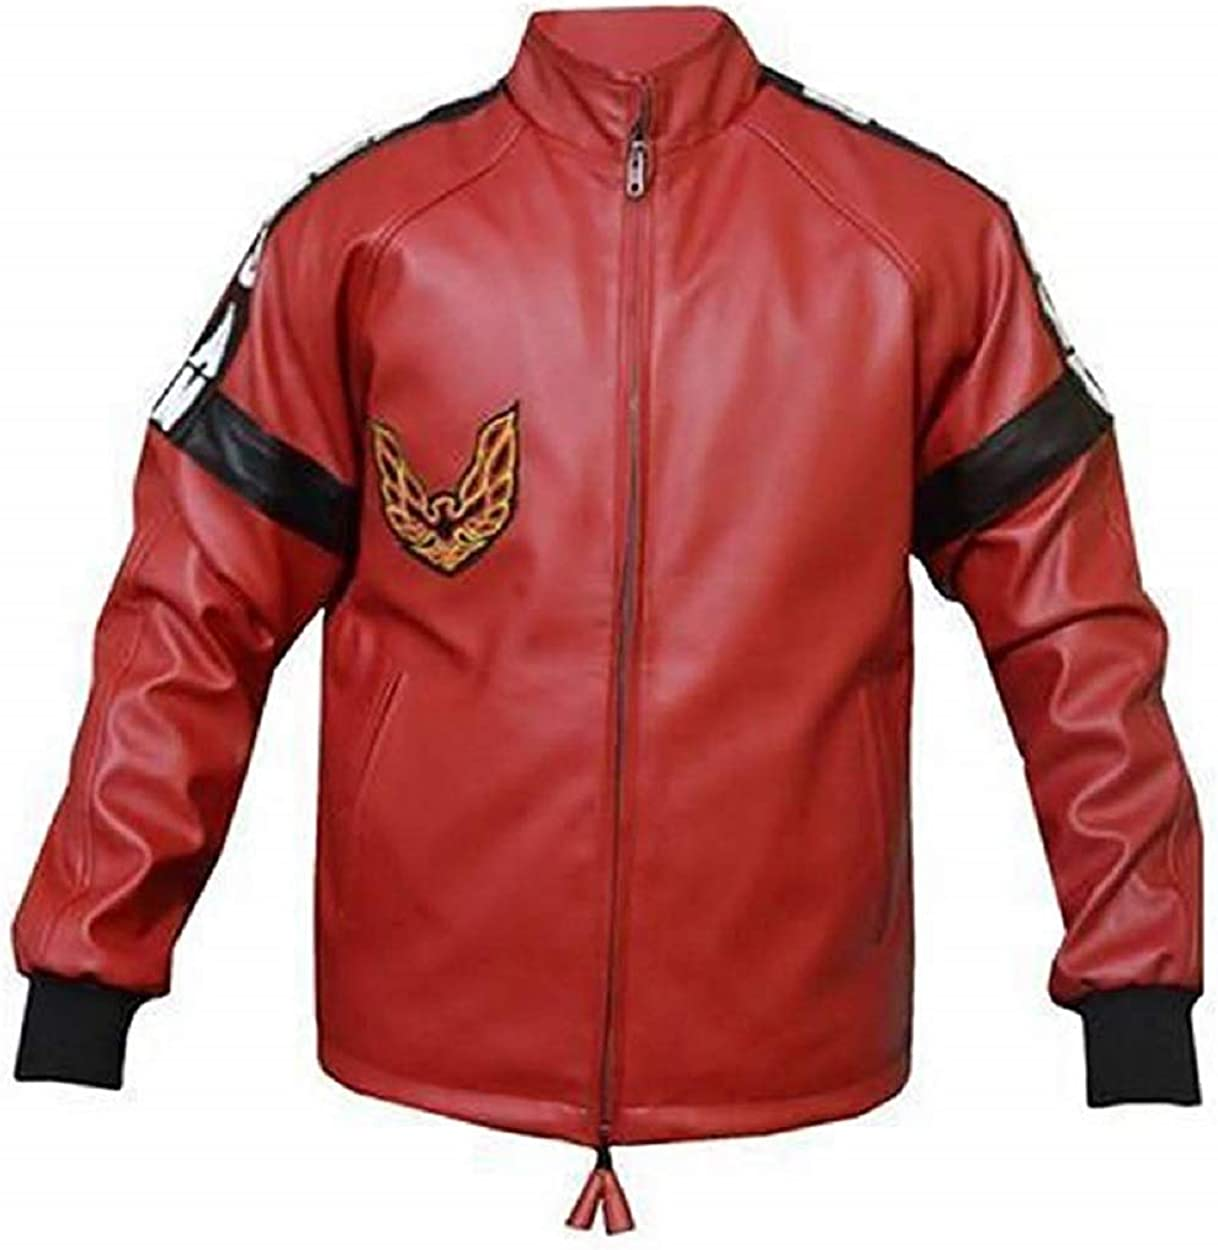 Smokey & The Bandit Trans Am Burt Reynolds Bomber Red Real Leather Jacket for Men's